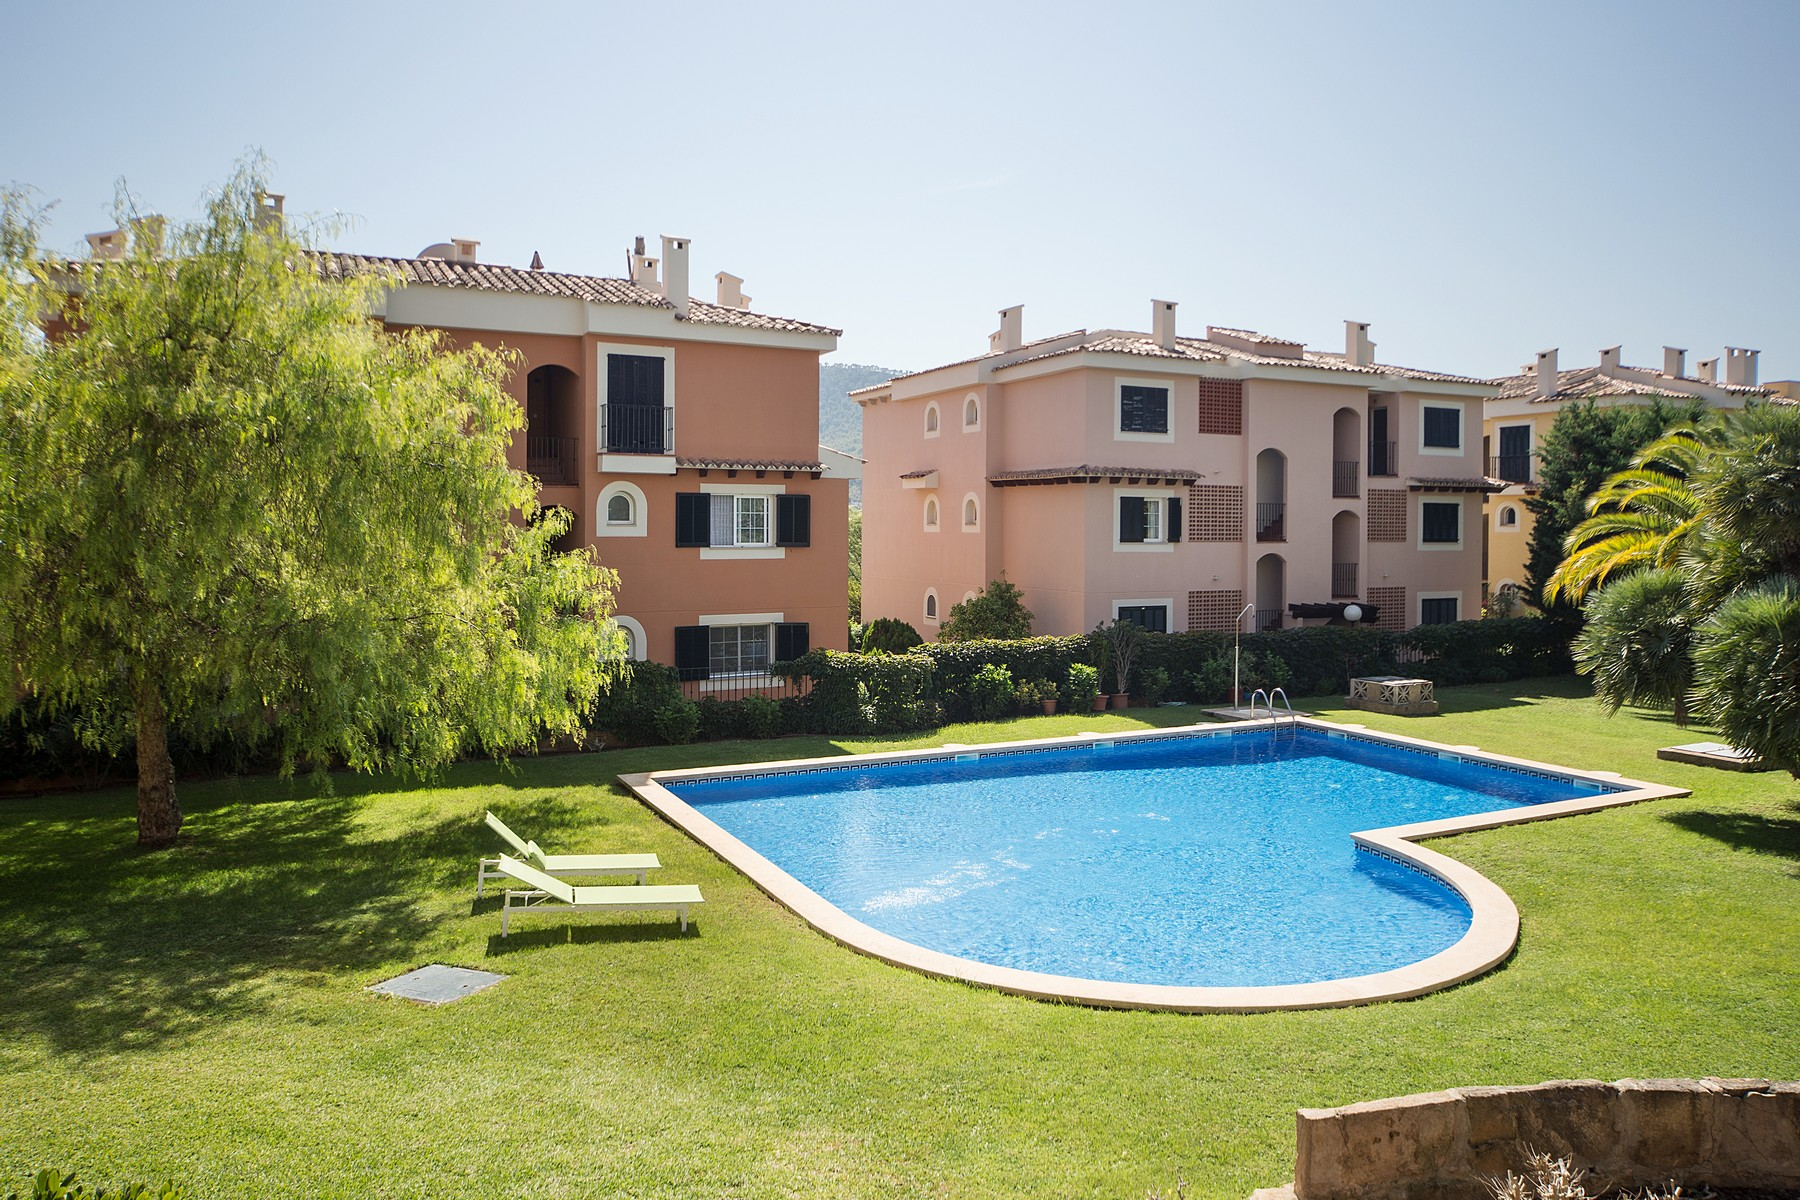 Apartment for Sale at Apartments in beautiful community in Port Andratx Port Andratx, Mallorca, 07157 Spain